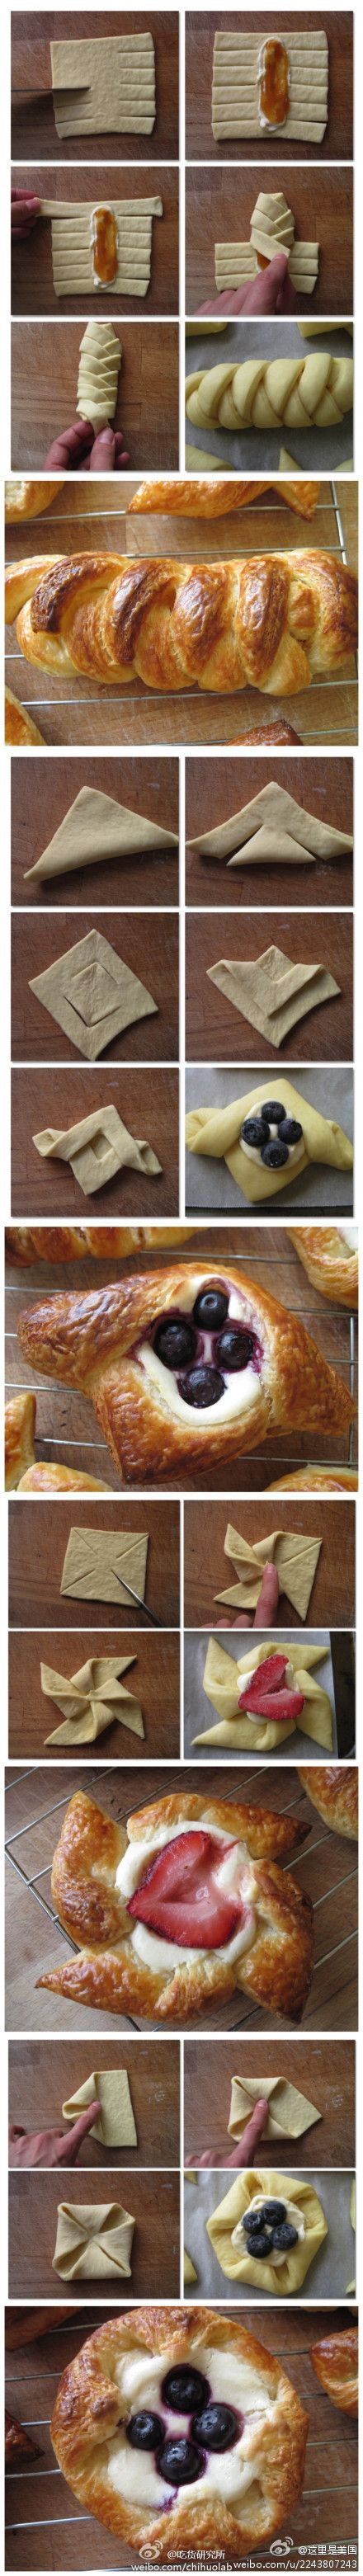 Yummy pastry twists!